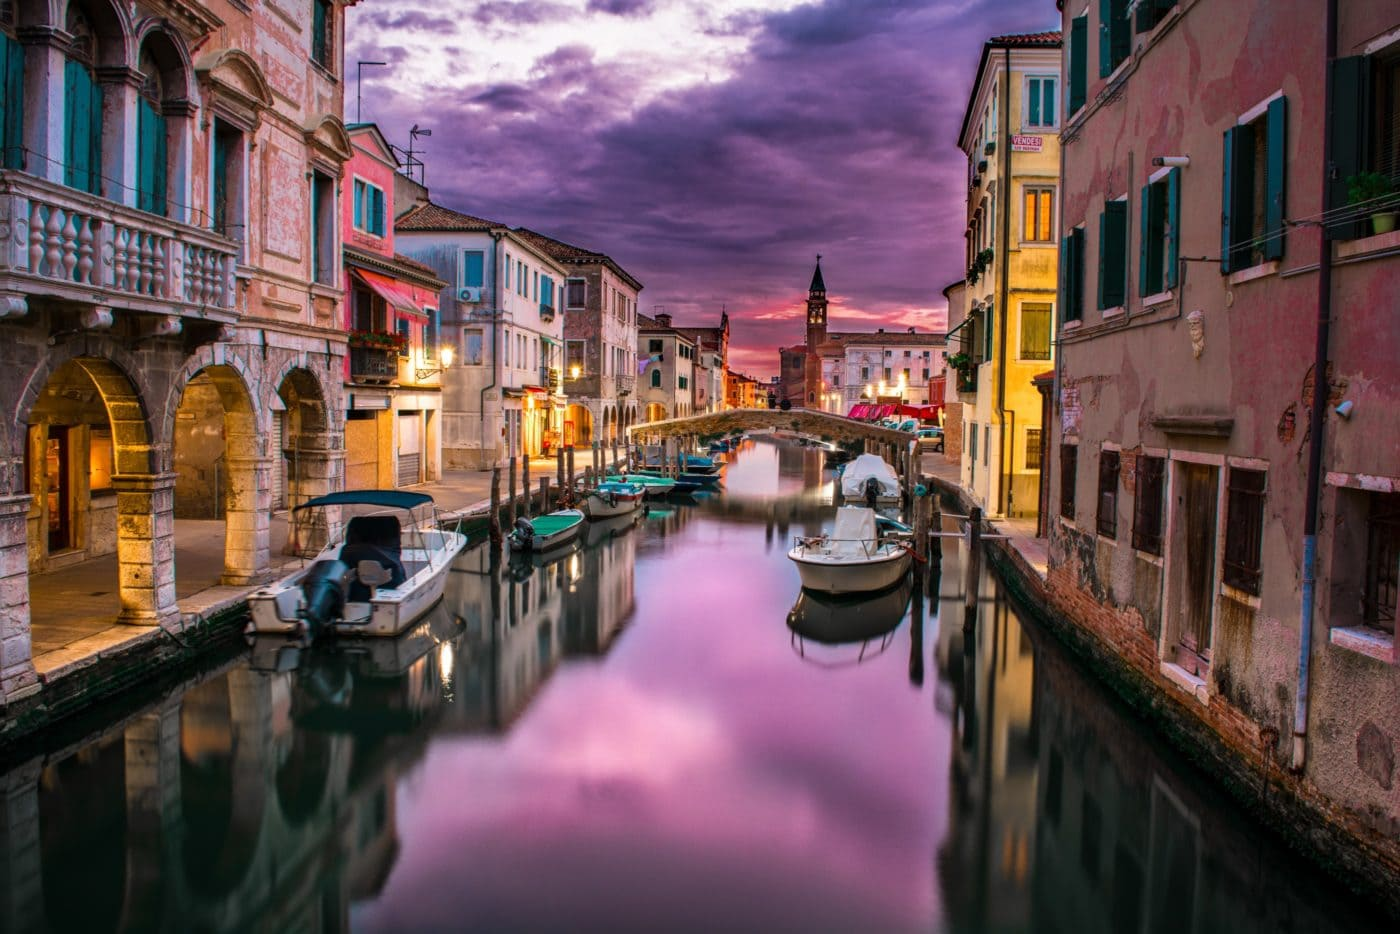 Postcard from Italy: Venice Sunset Pretty iN Pink